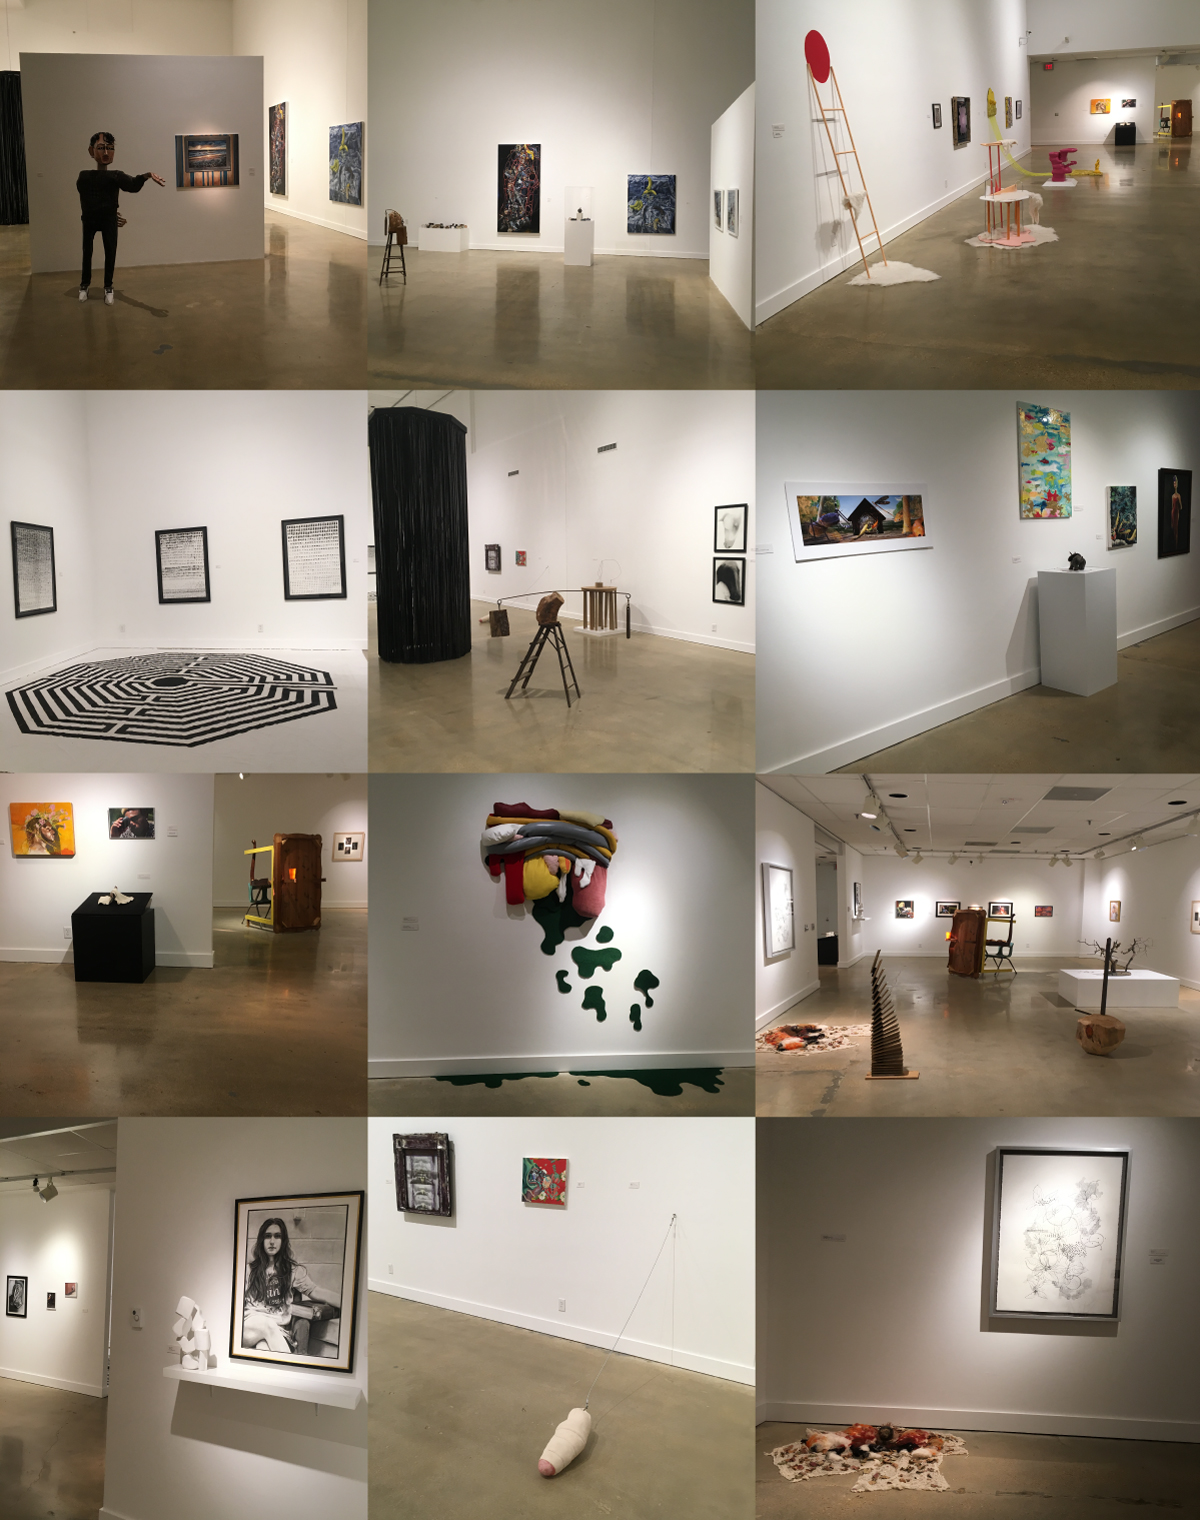 35th Annual Juried Student Exhibition